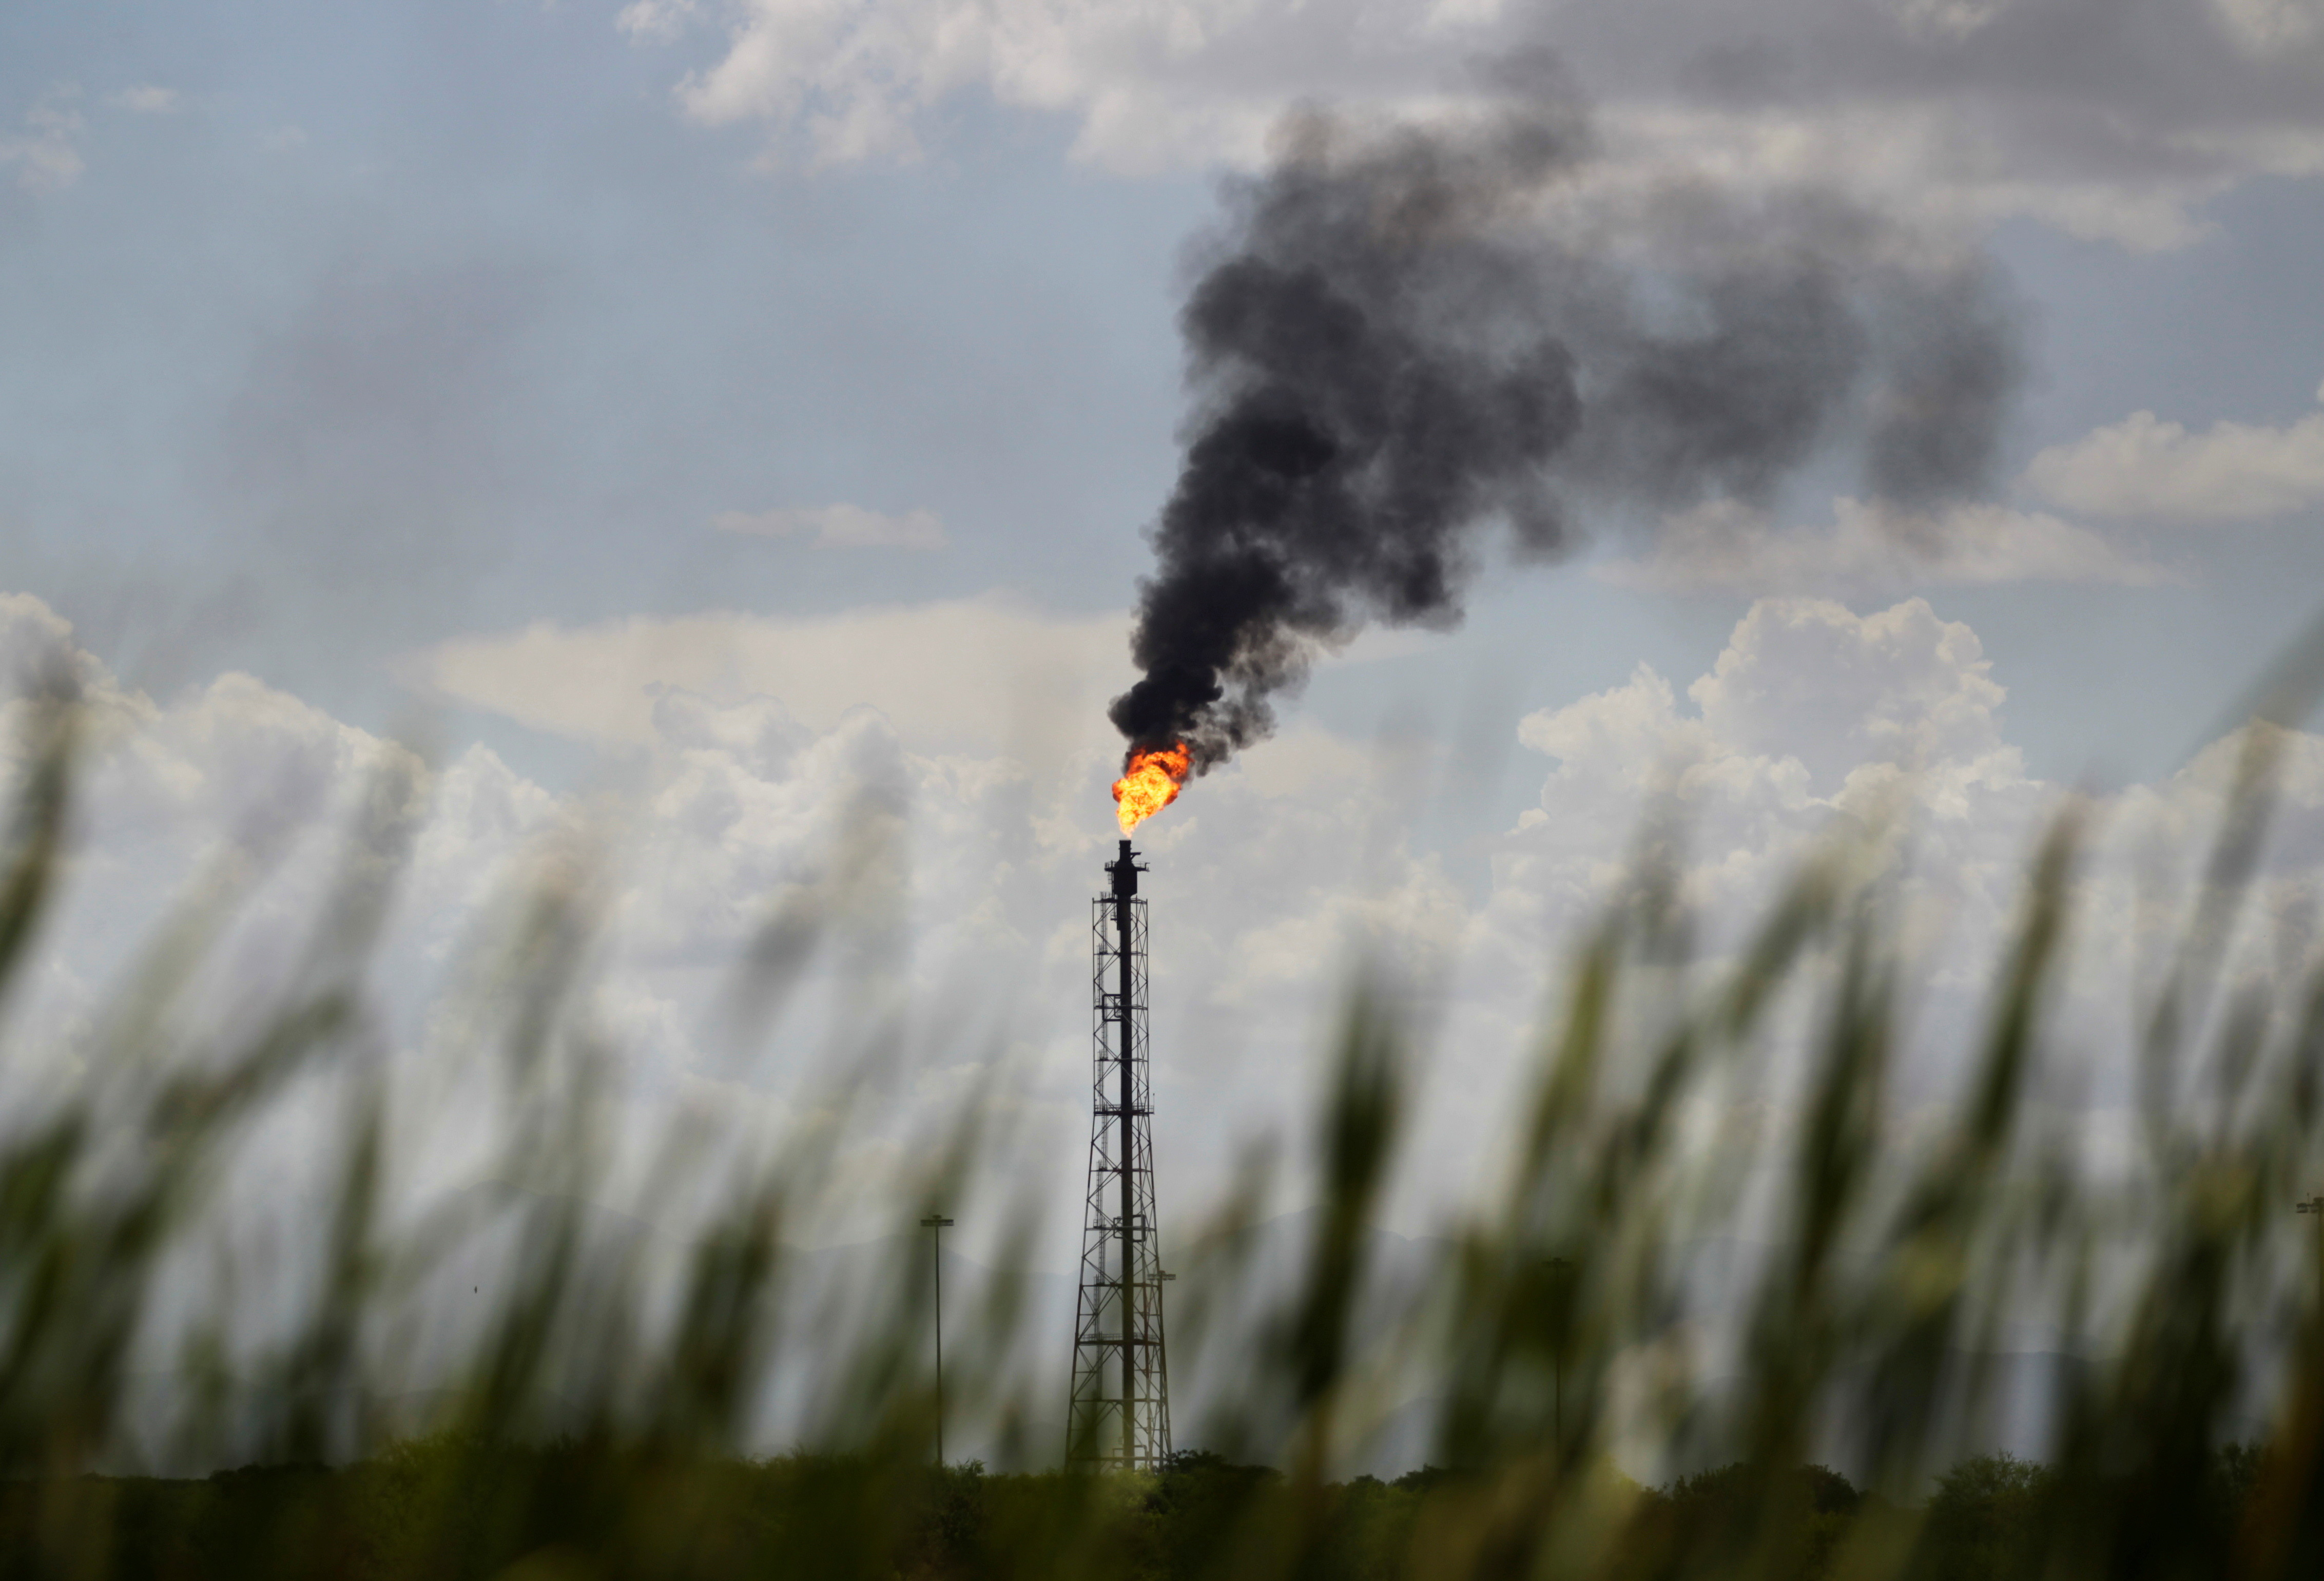 A flare stack of the refinery of Mexico's national oil company Pemex is pictured in Cadereyta, on the outskirts of Monterrey, Mexico, August 27, 2021. REUTERS/Daniel Becerril - RC2RDP9RLUQJ